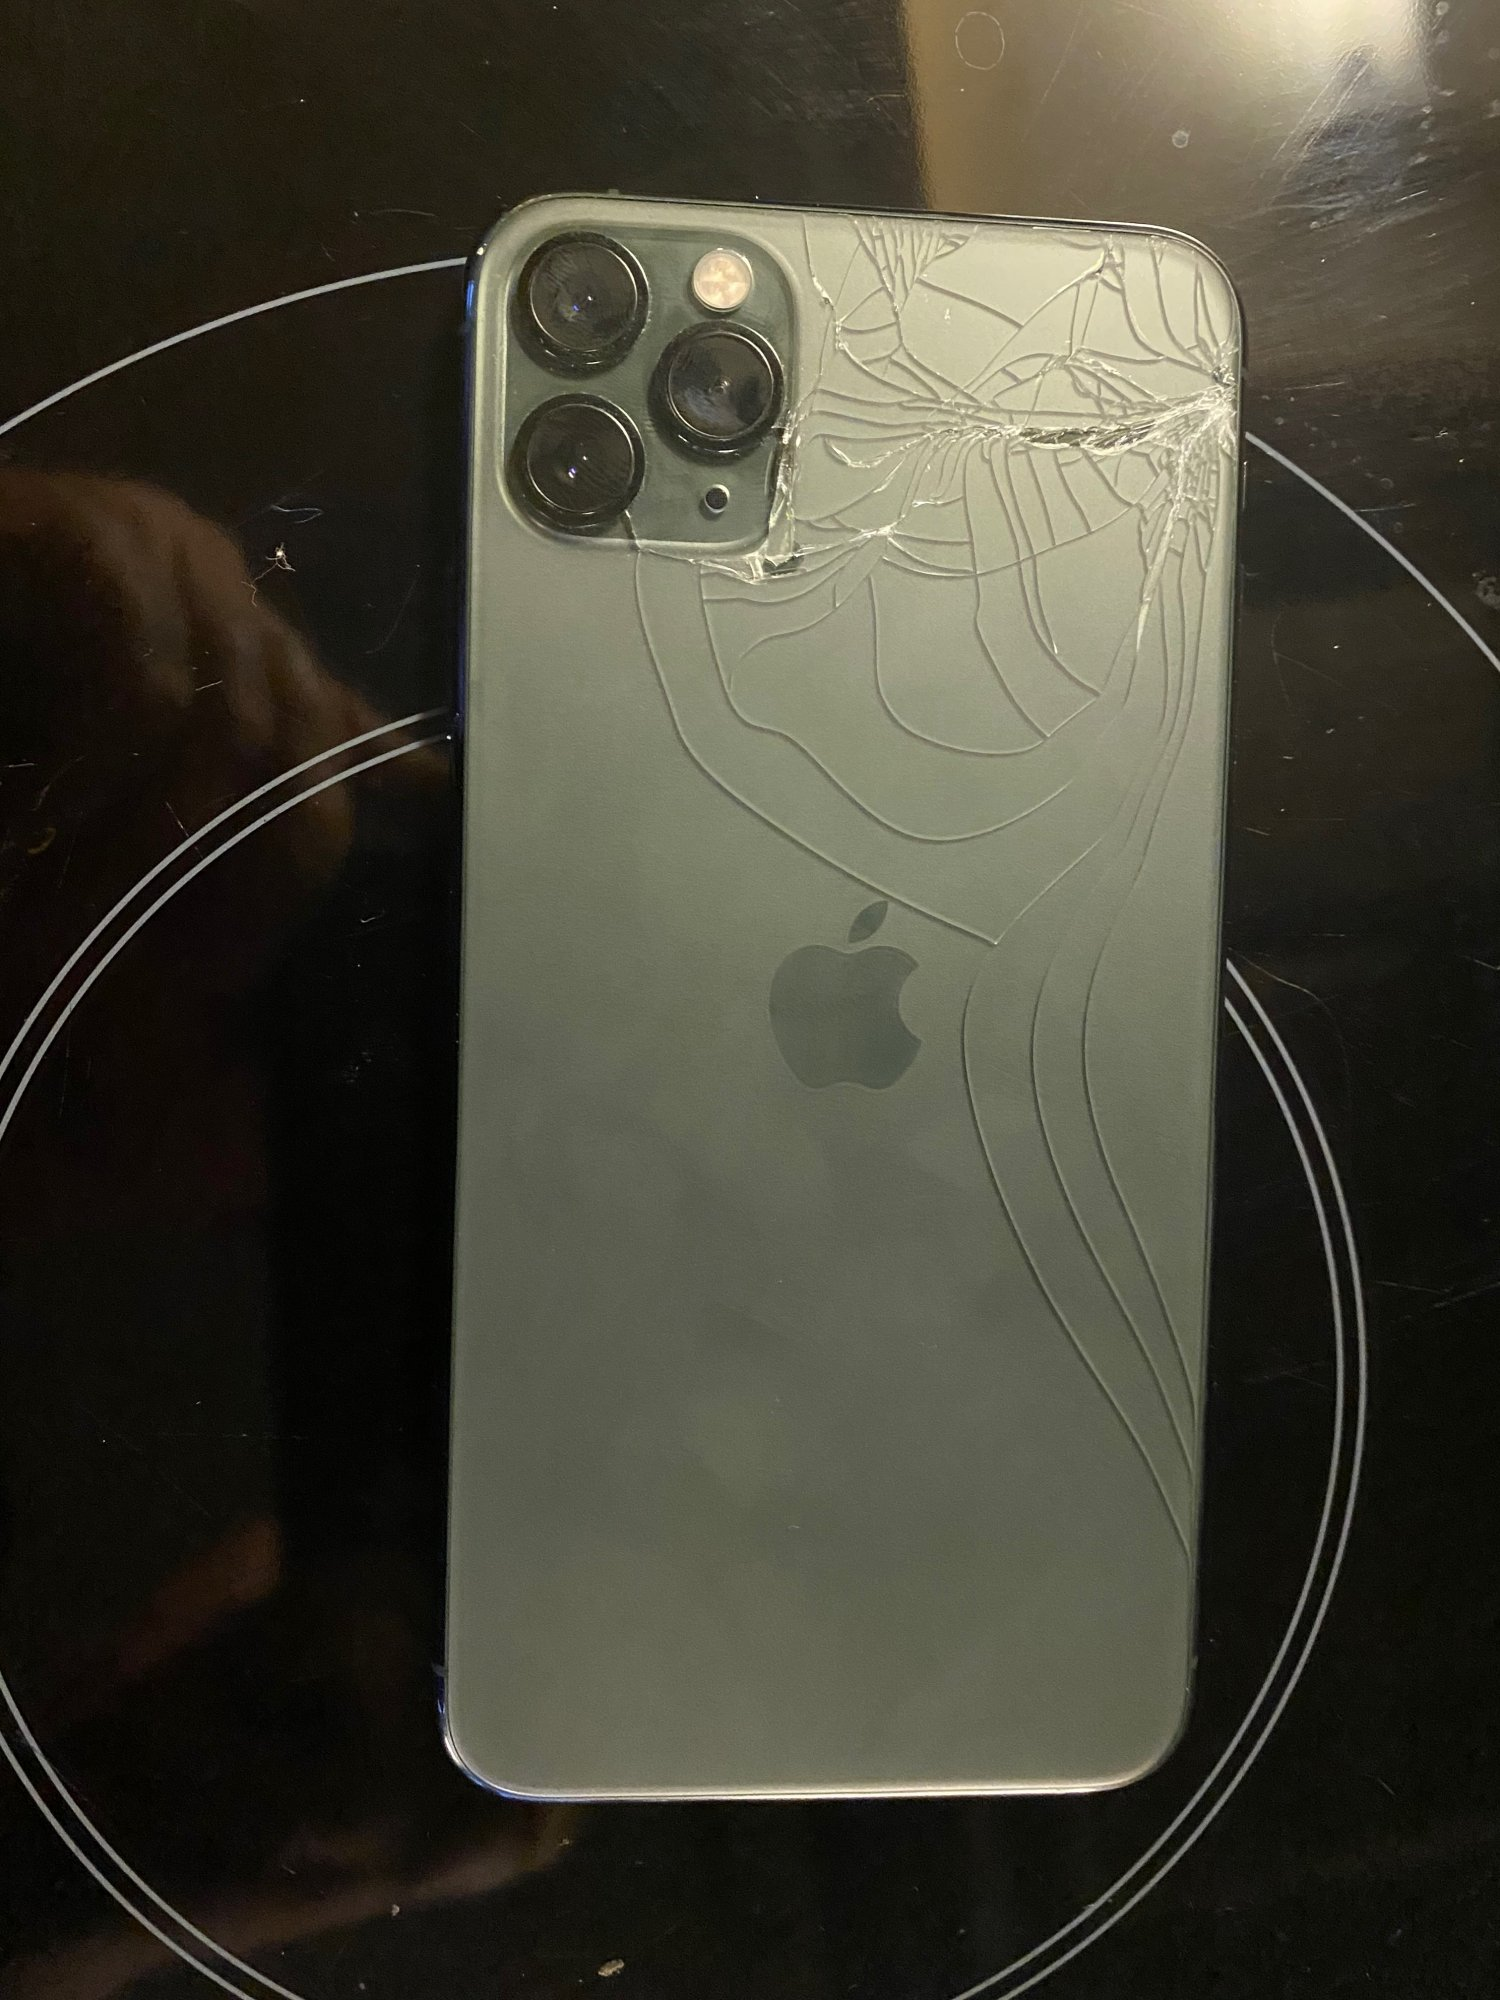 How Much Is An Iphone 11 Pro Max Worth If The Back Glass Cracked Macrumors Forums